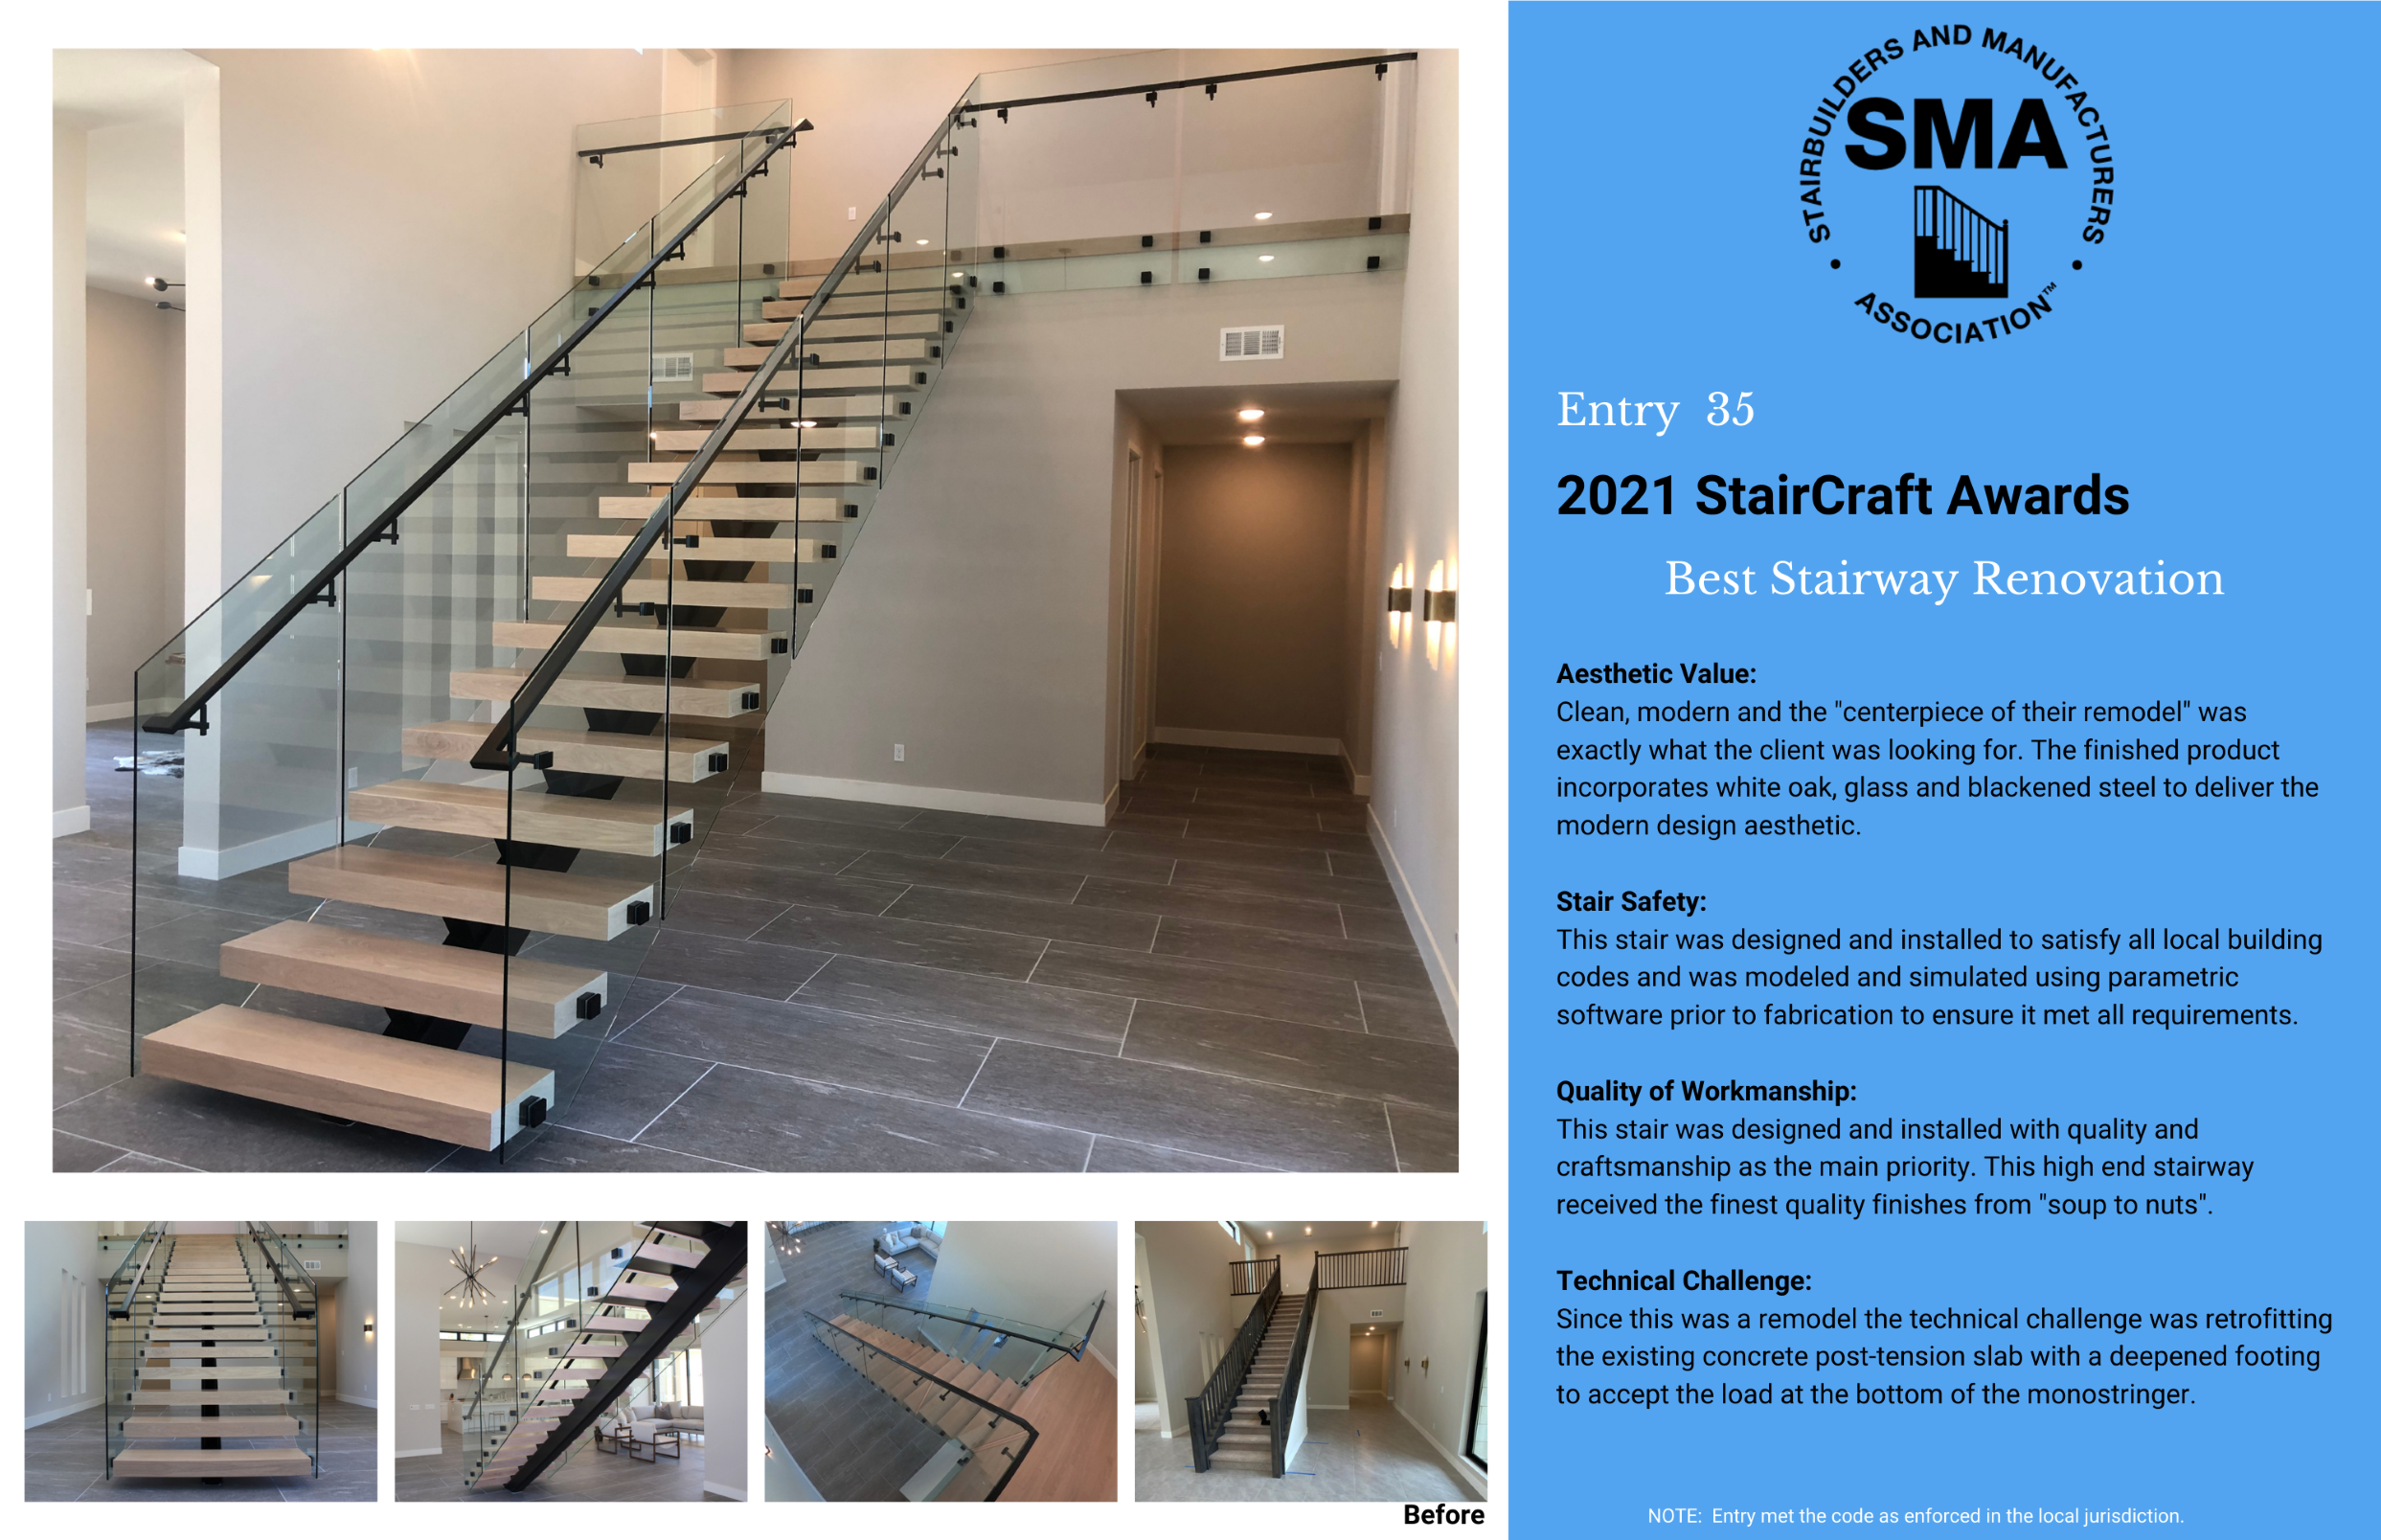 2021 StairCraft Awards Entry 35